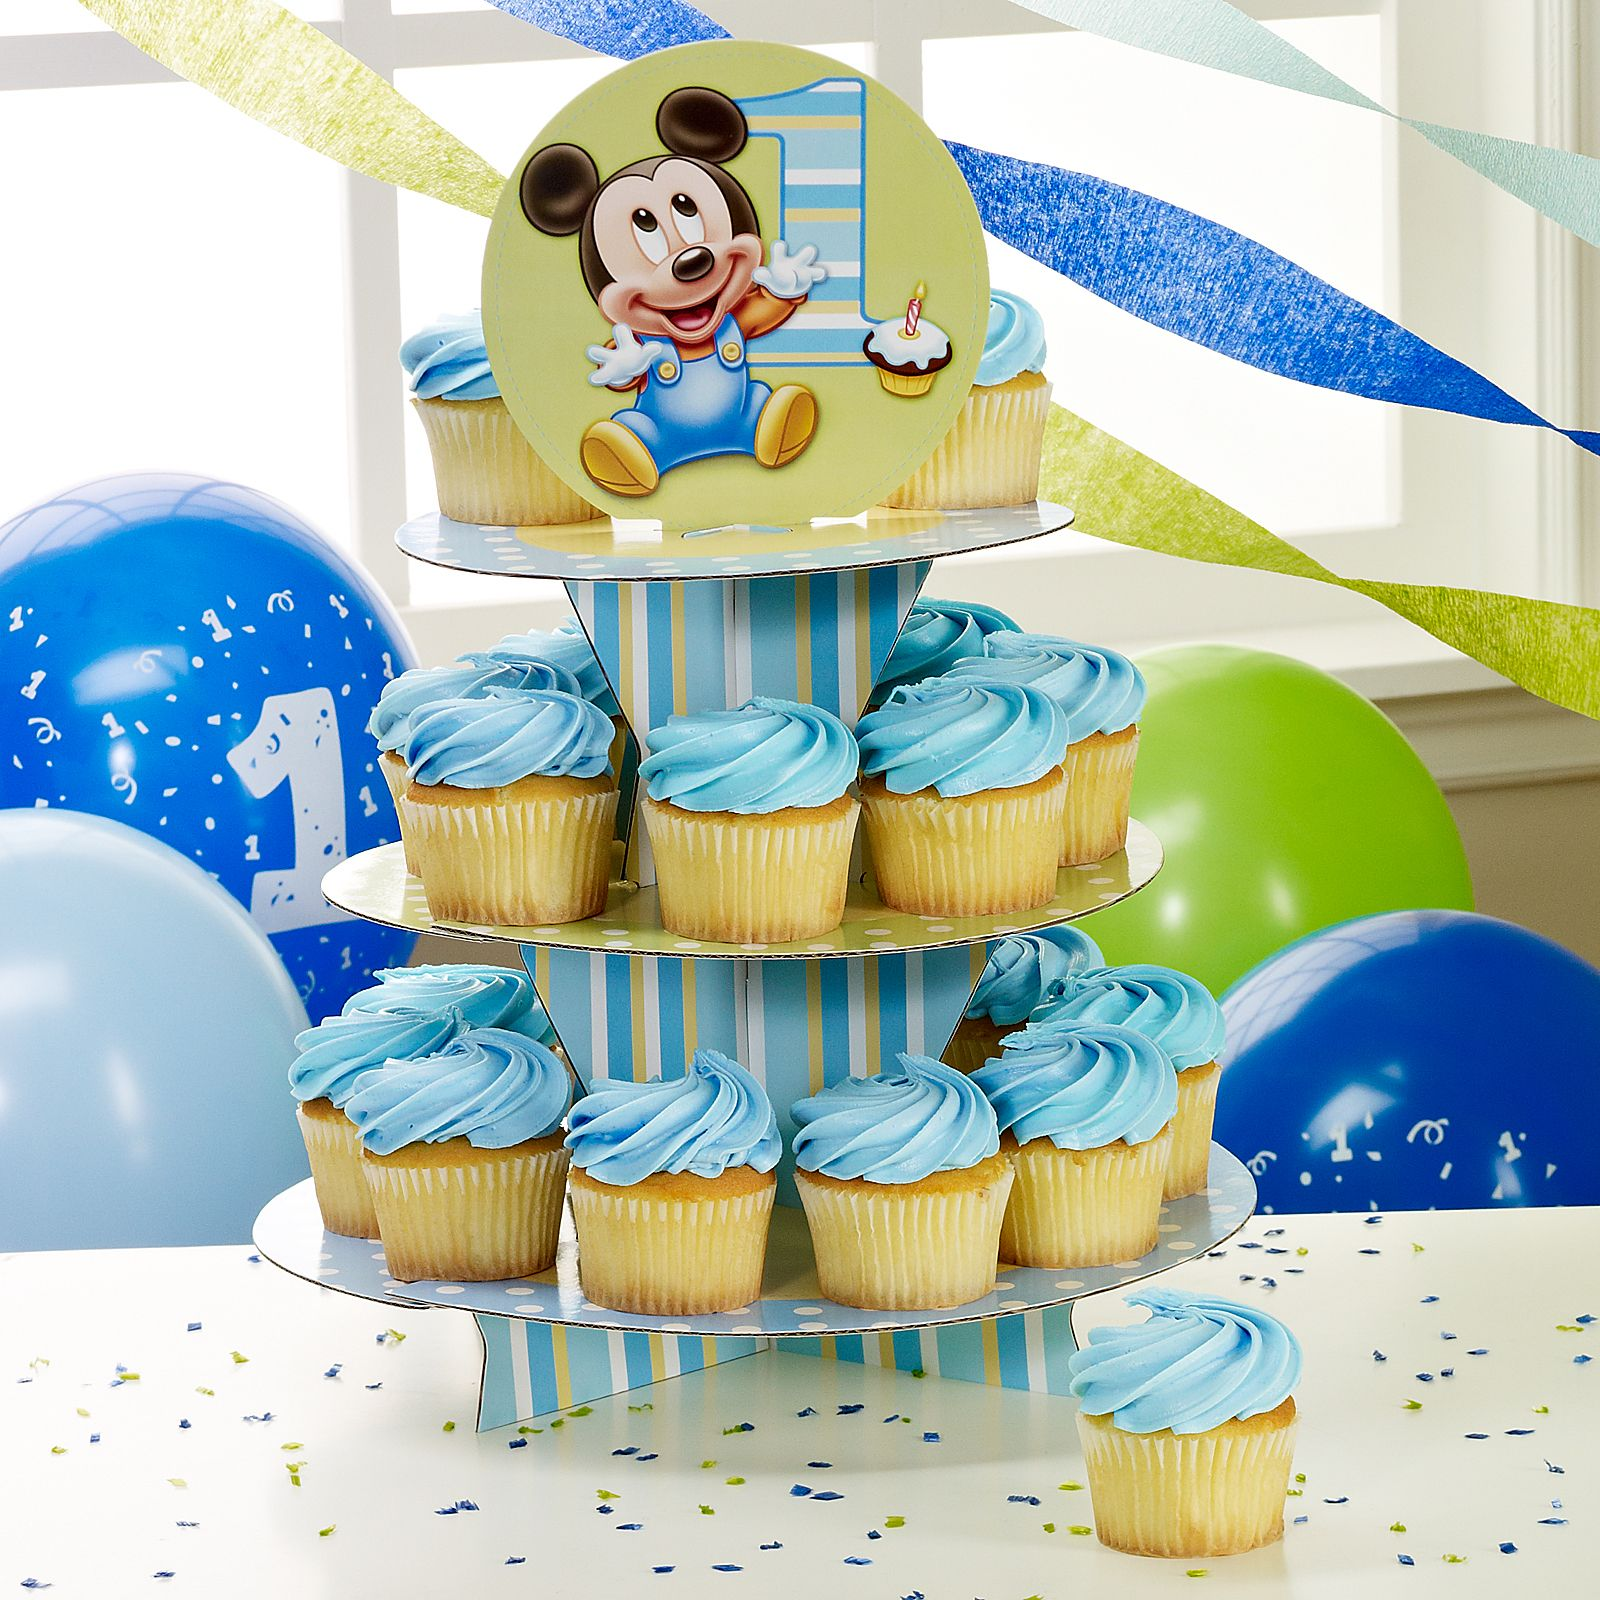 Baby Mickey Mouse Edible Cake Decorations Baby Mickey Mouse Cupcakes Home Mickeys 1st Birthday Cupcake